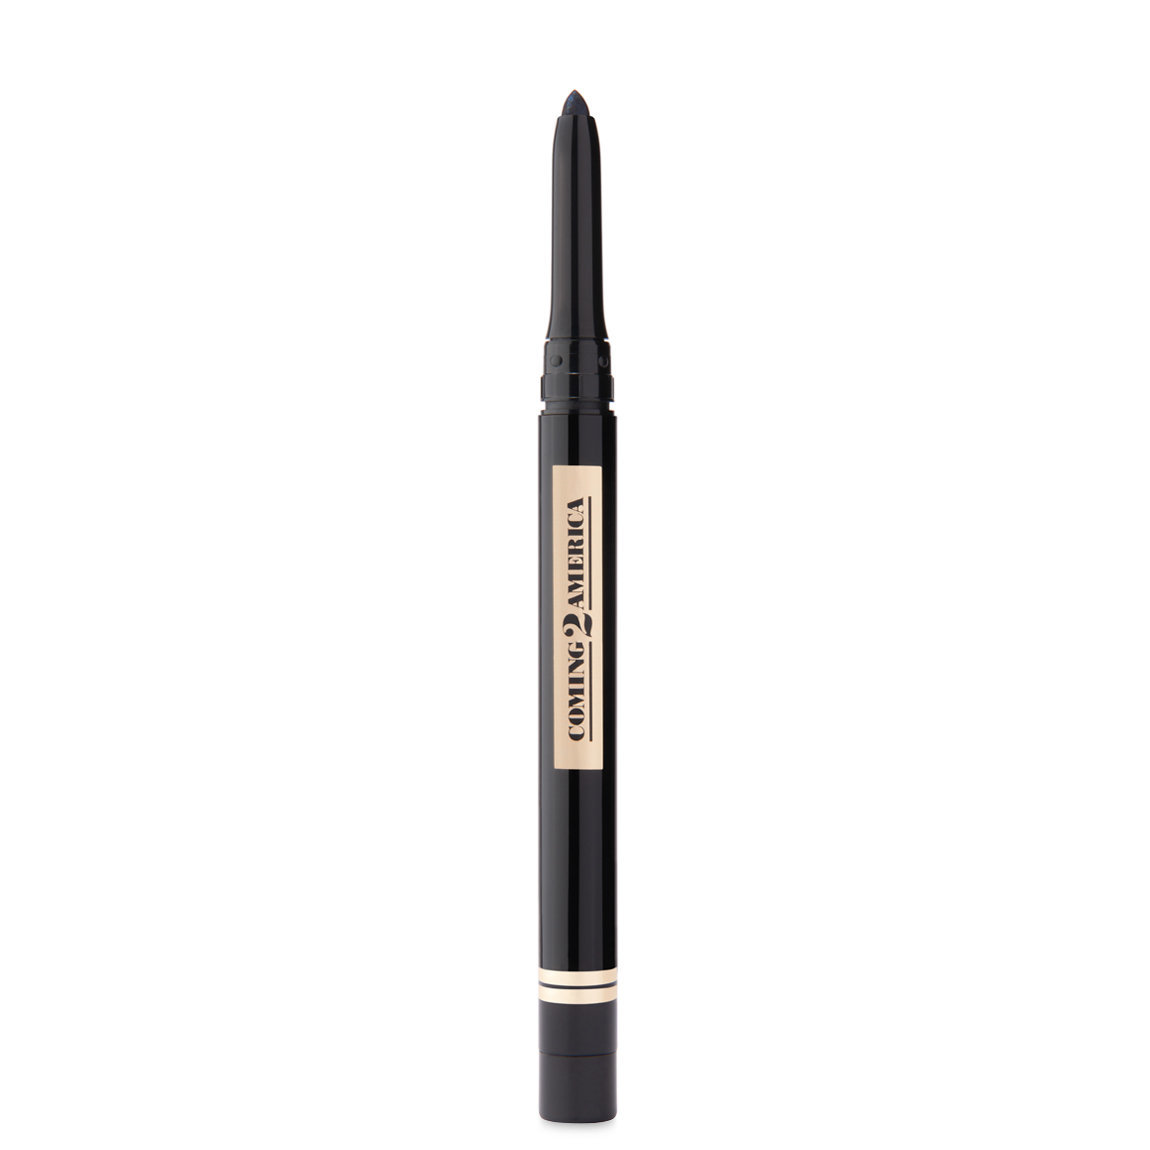 UOMA Beauty Coming 2 America Collection: Kajal Kohl Eyeliner Pencil PJ Black alternative view 1.